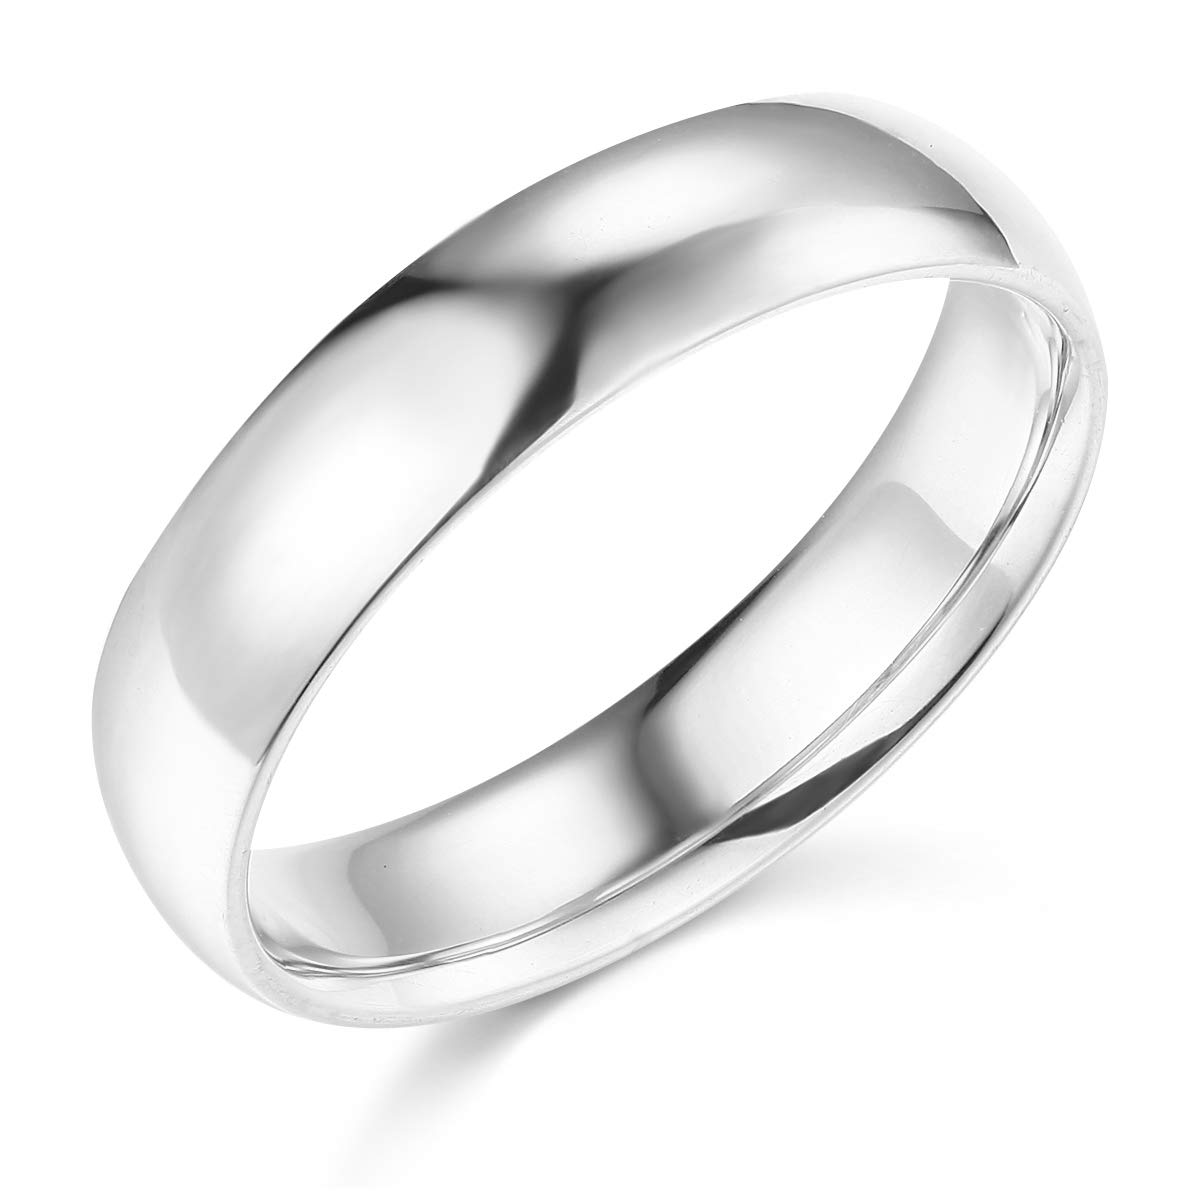 OR White Gold Heavy 5mm COMFORT FIT Traditional Wedding Band Ring Wellingsale 14k Yellow